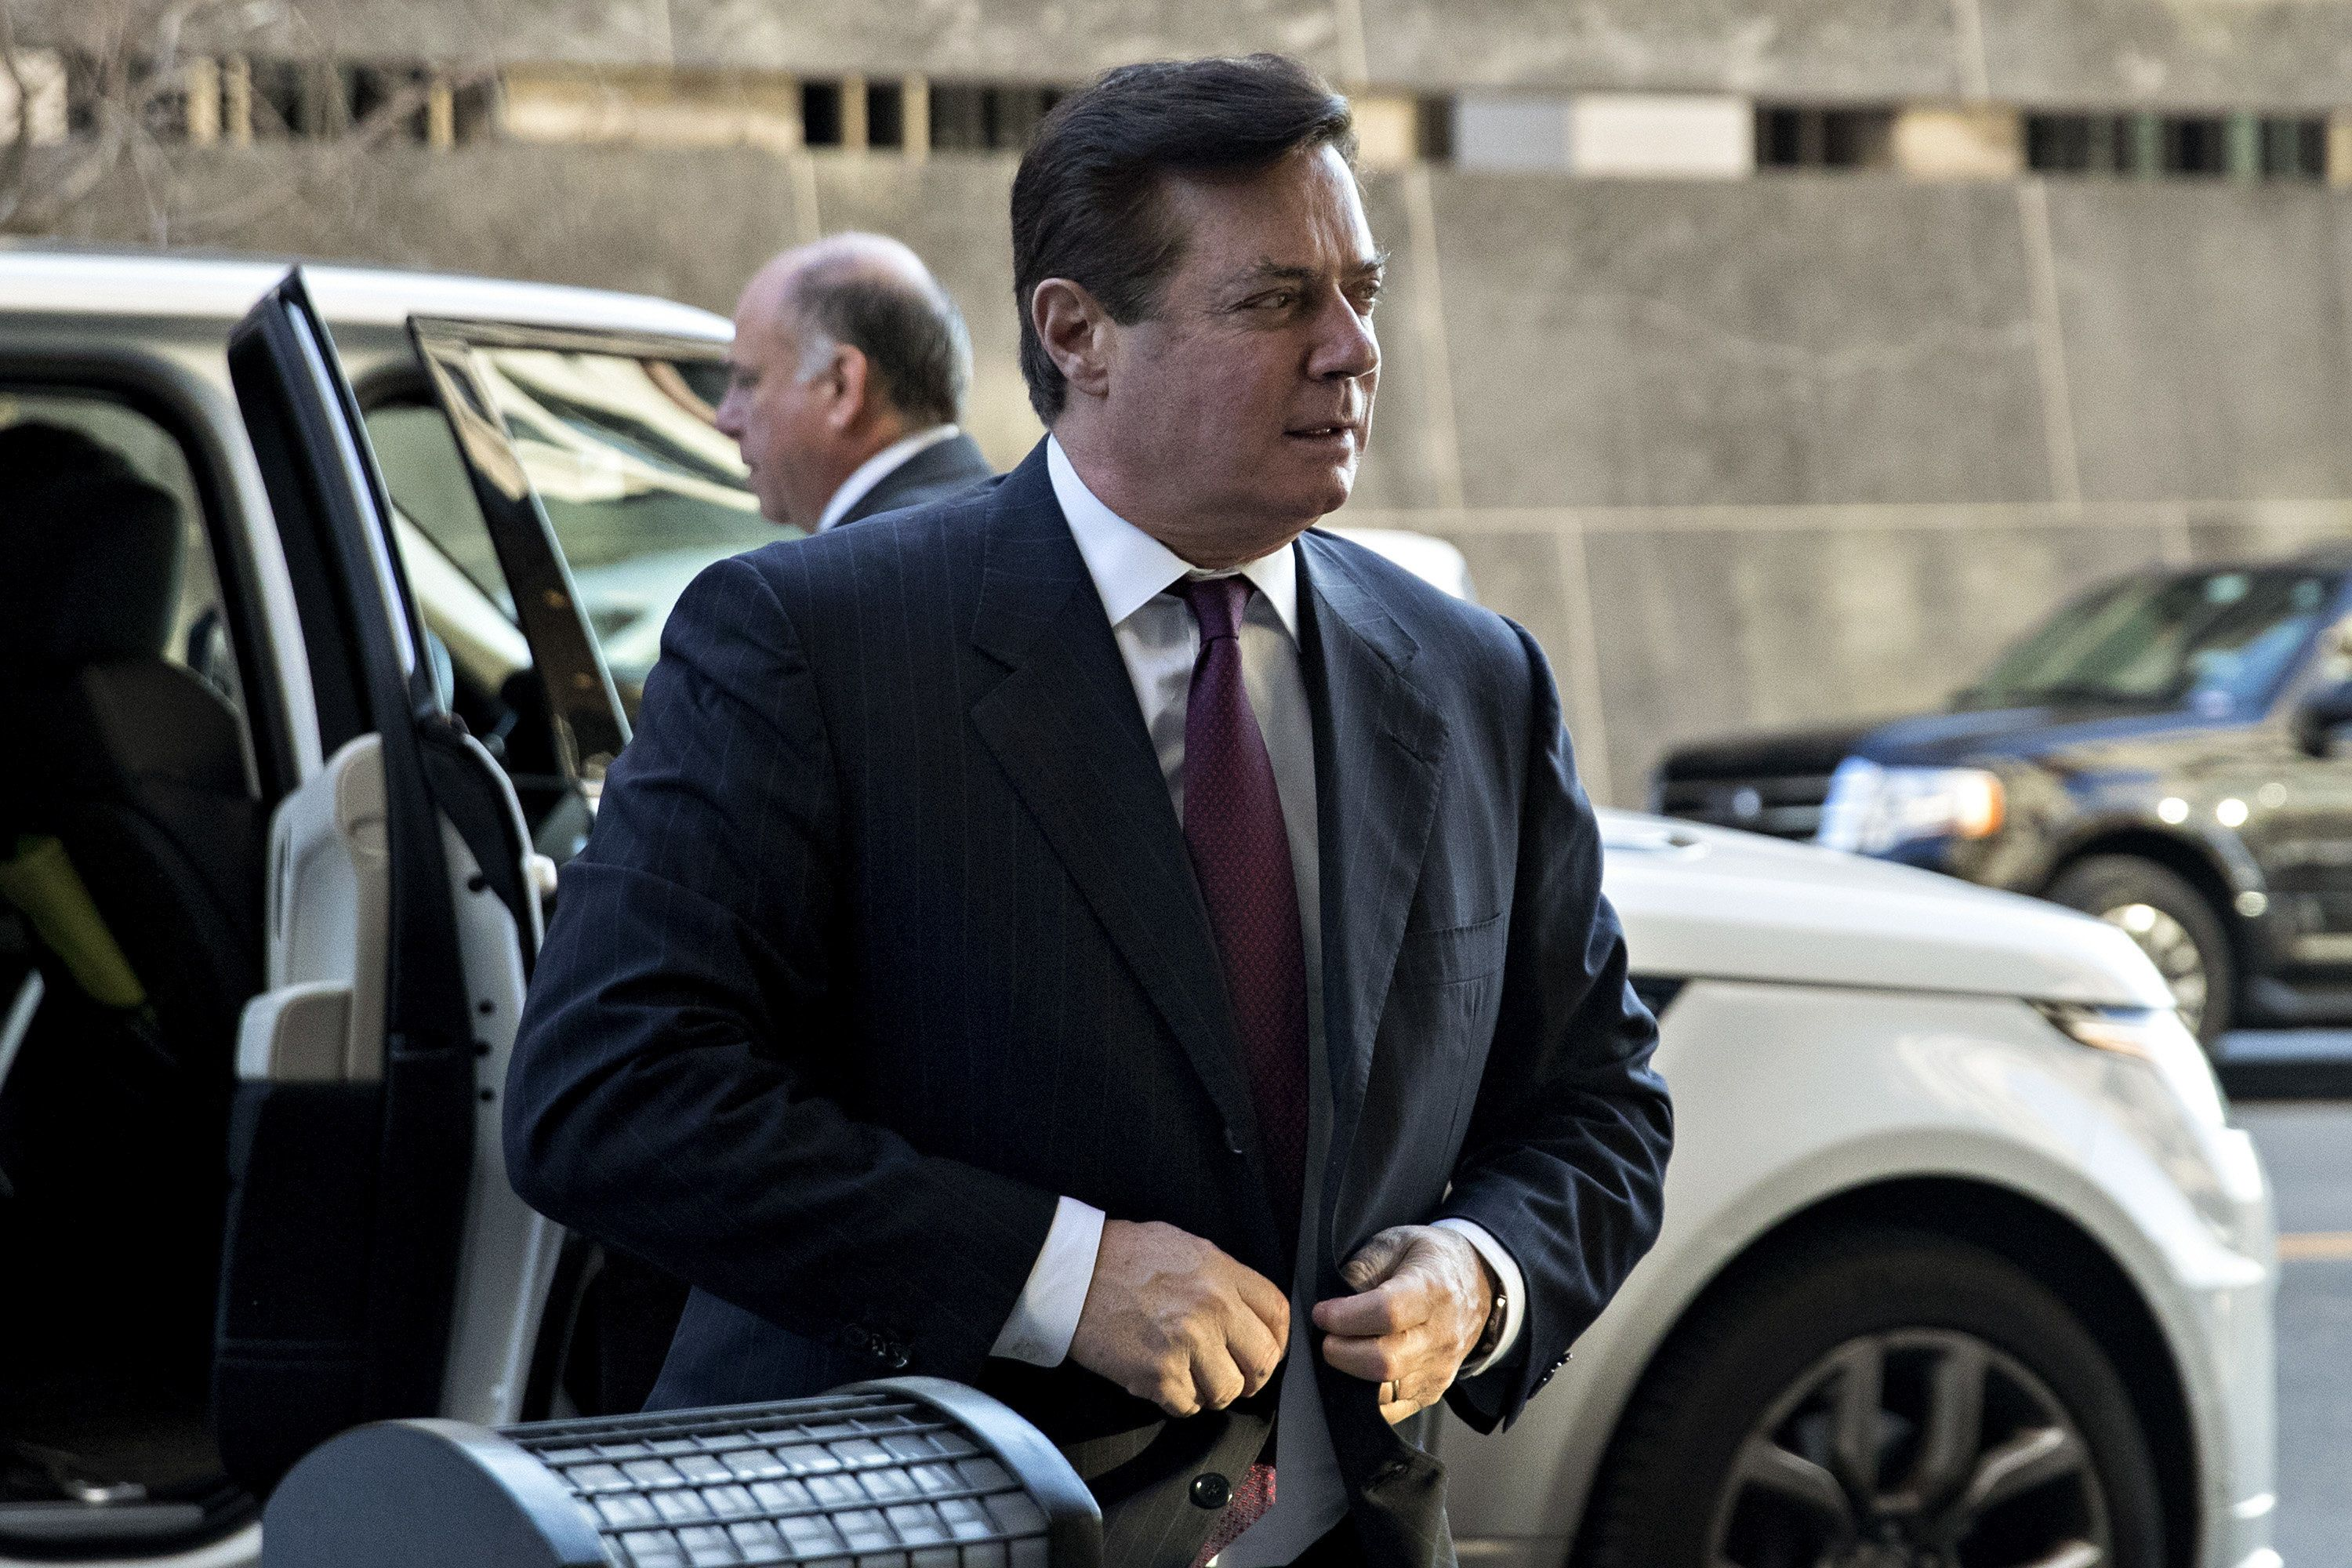 FILE: Paul Manafort, former campaign manager for Donald Trump, arrives at the U.S. Courthouse for a status conference in Washington, D.C., U.S., on Monday, Dec. 11, 2017. Sunday, January 20, 2019, marks the second anniversary of U.S. President Donald Trump's inauguration. Our editors select the best archive images looking back over Trumps second year in office. Photographer: Andrew Harrer/Bloomberg via Getty Images